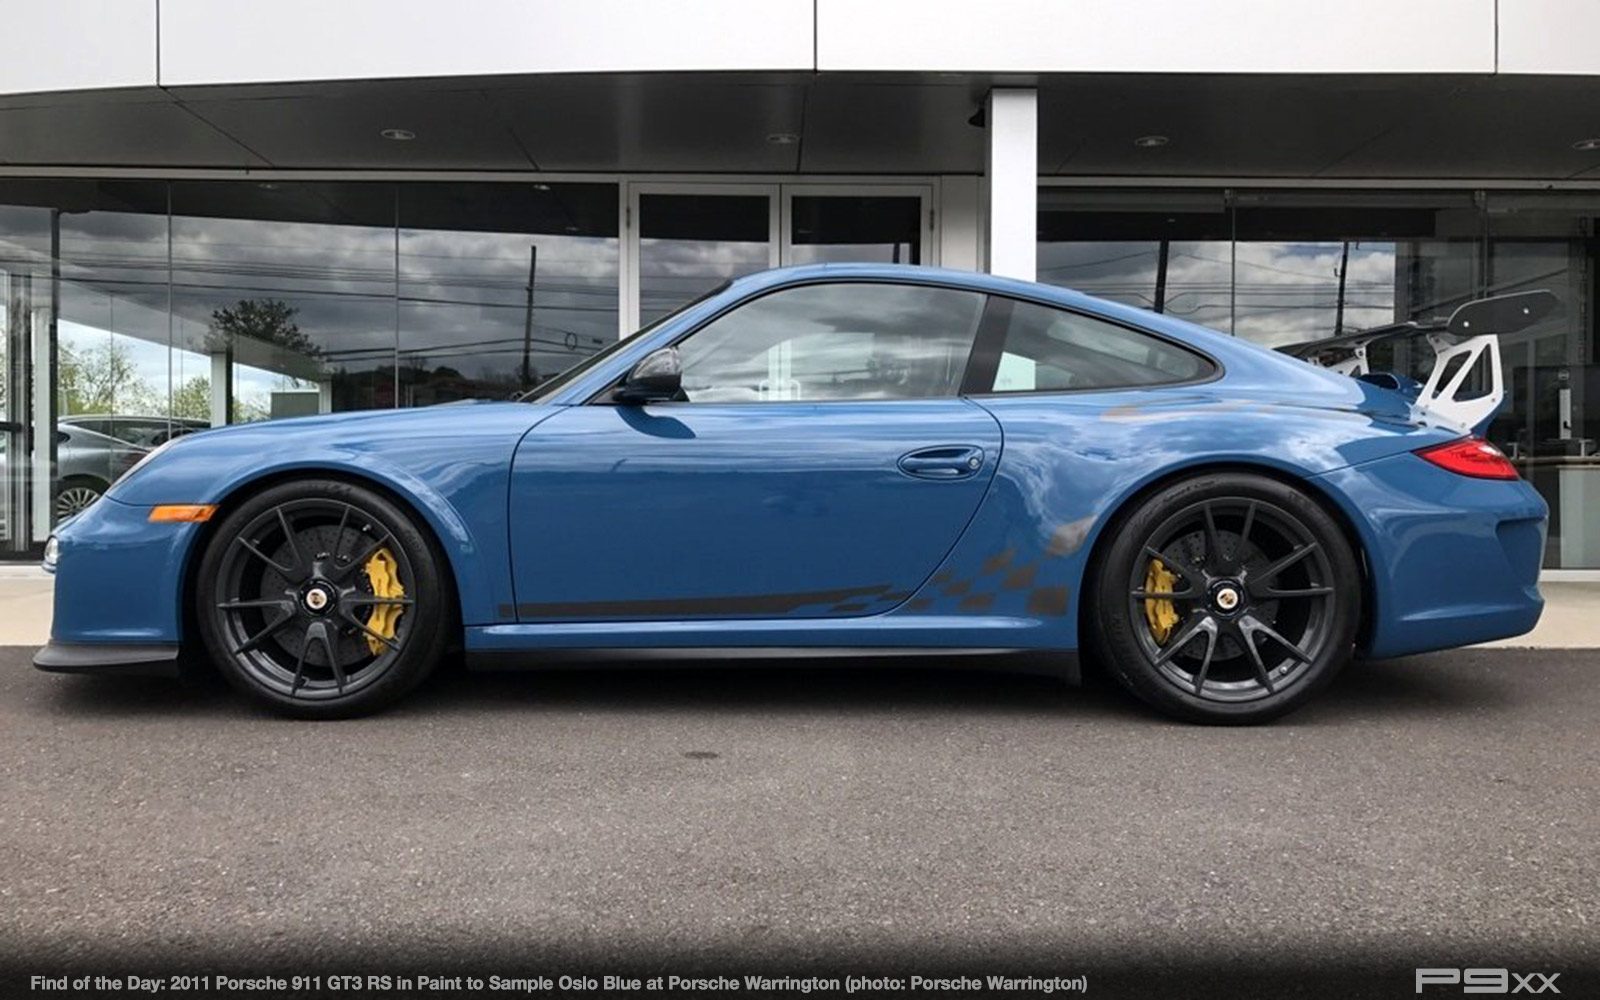 In Market Paint To Sample Oslo Blue 2011 Porsche 911 Gt3